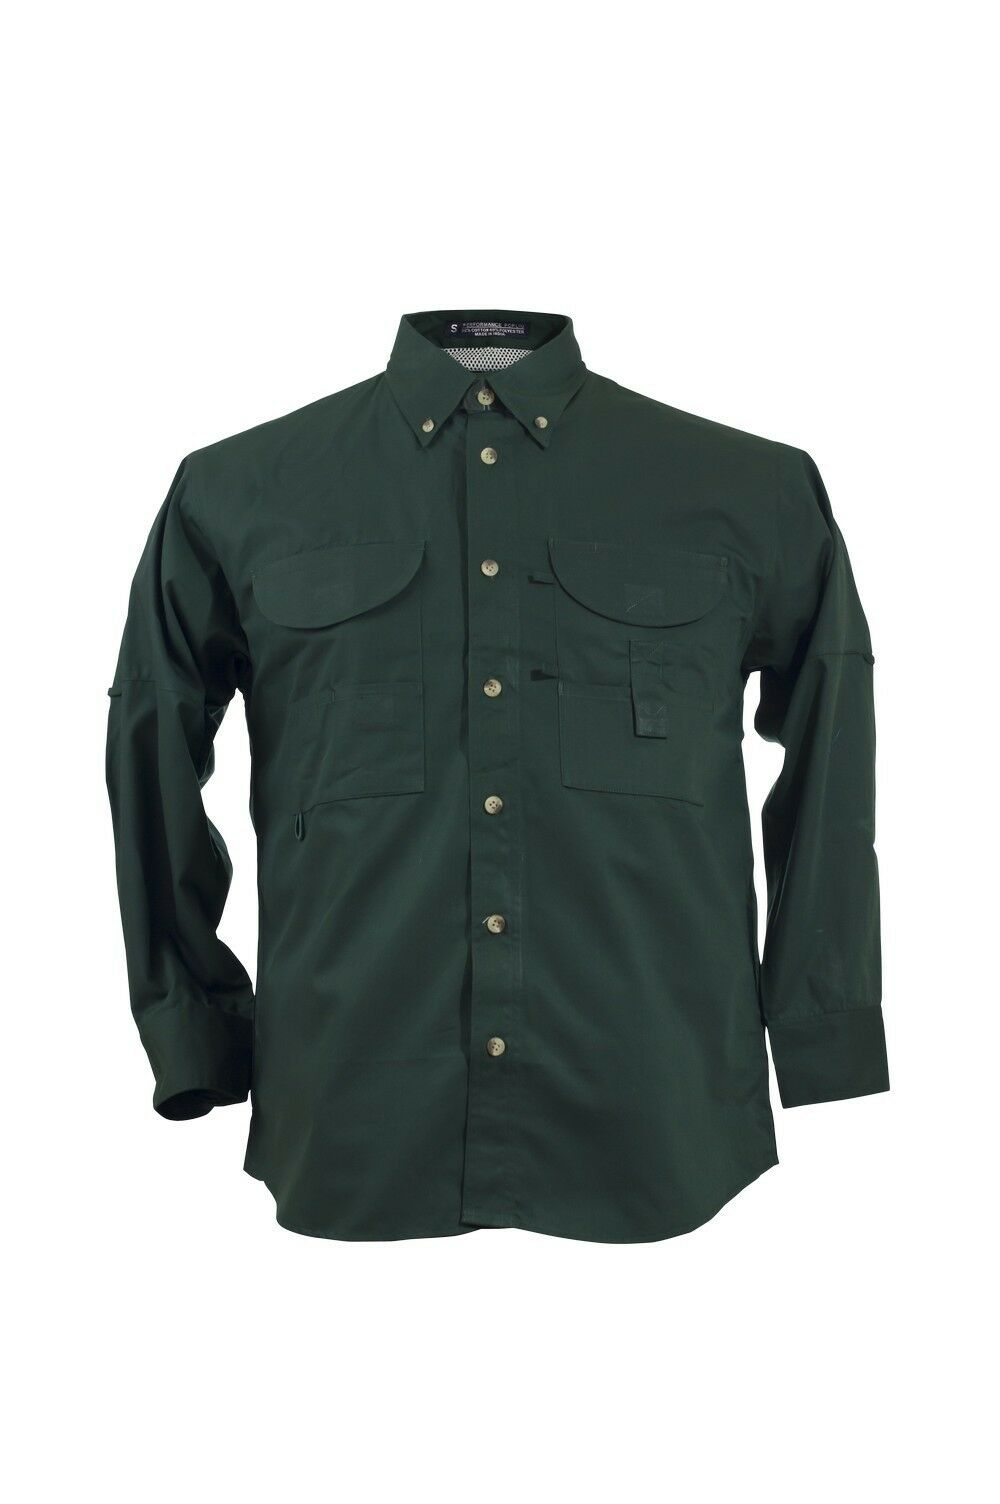 ed1dc740 Tiger Hill Men's Shirt Long Forest Green Fishing Sleeves nofbae964 ...